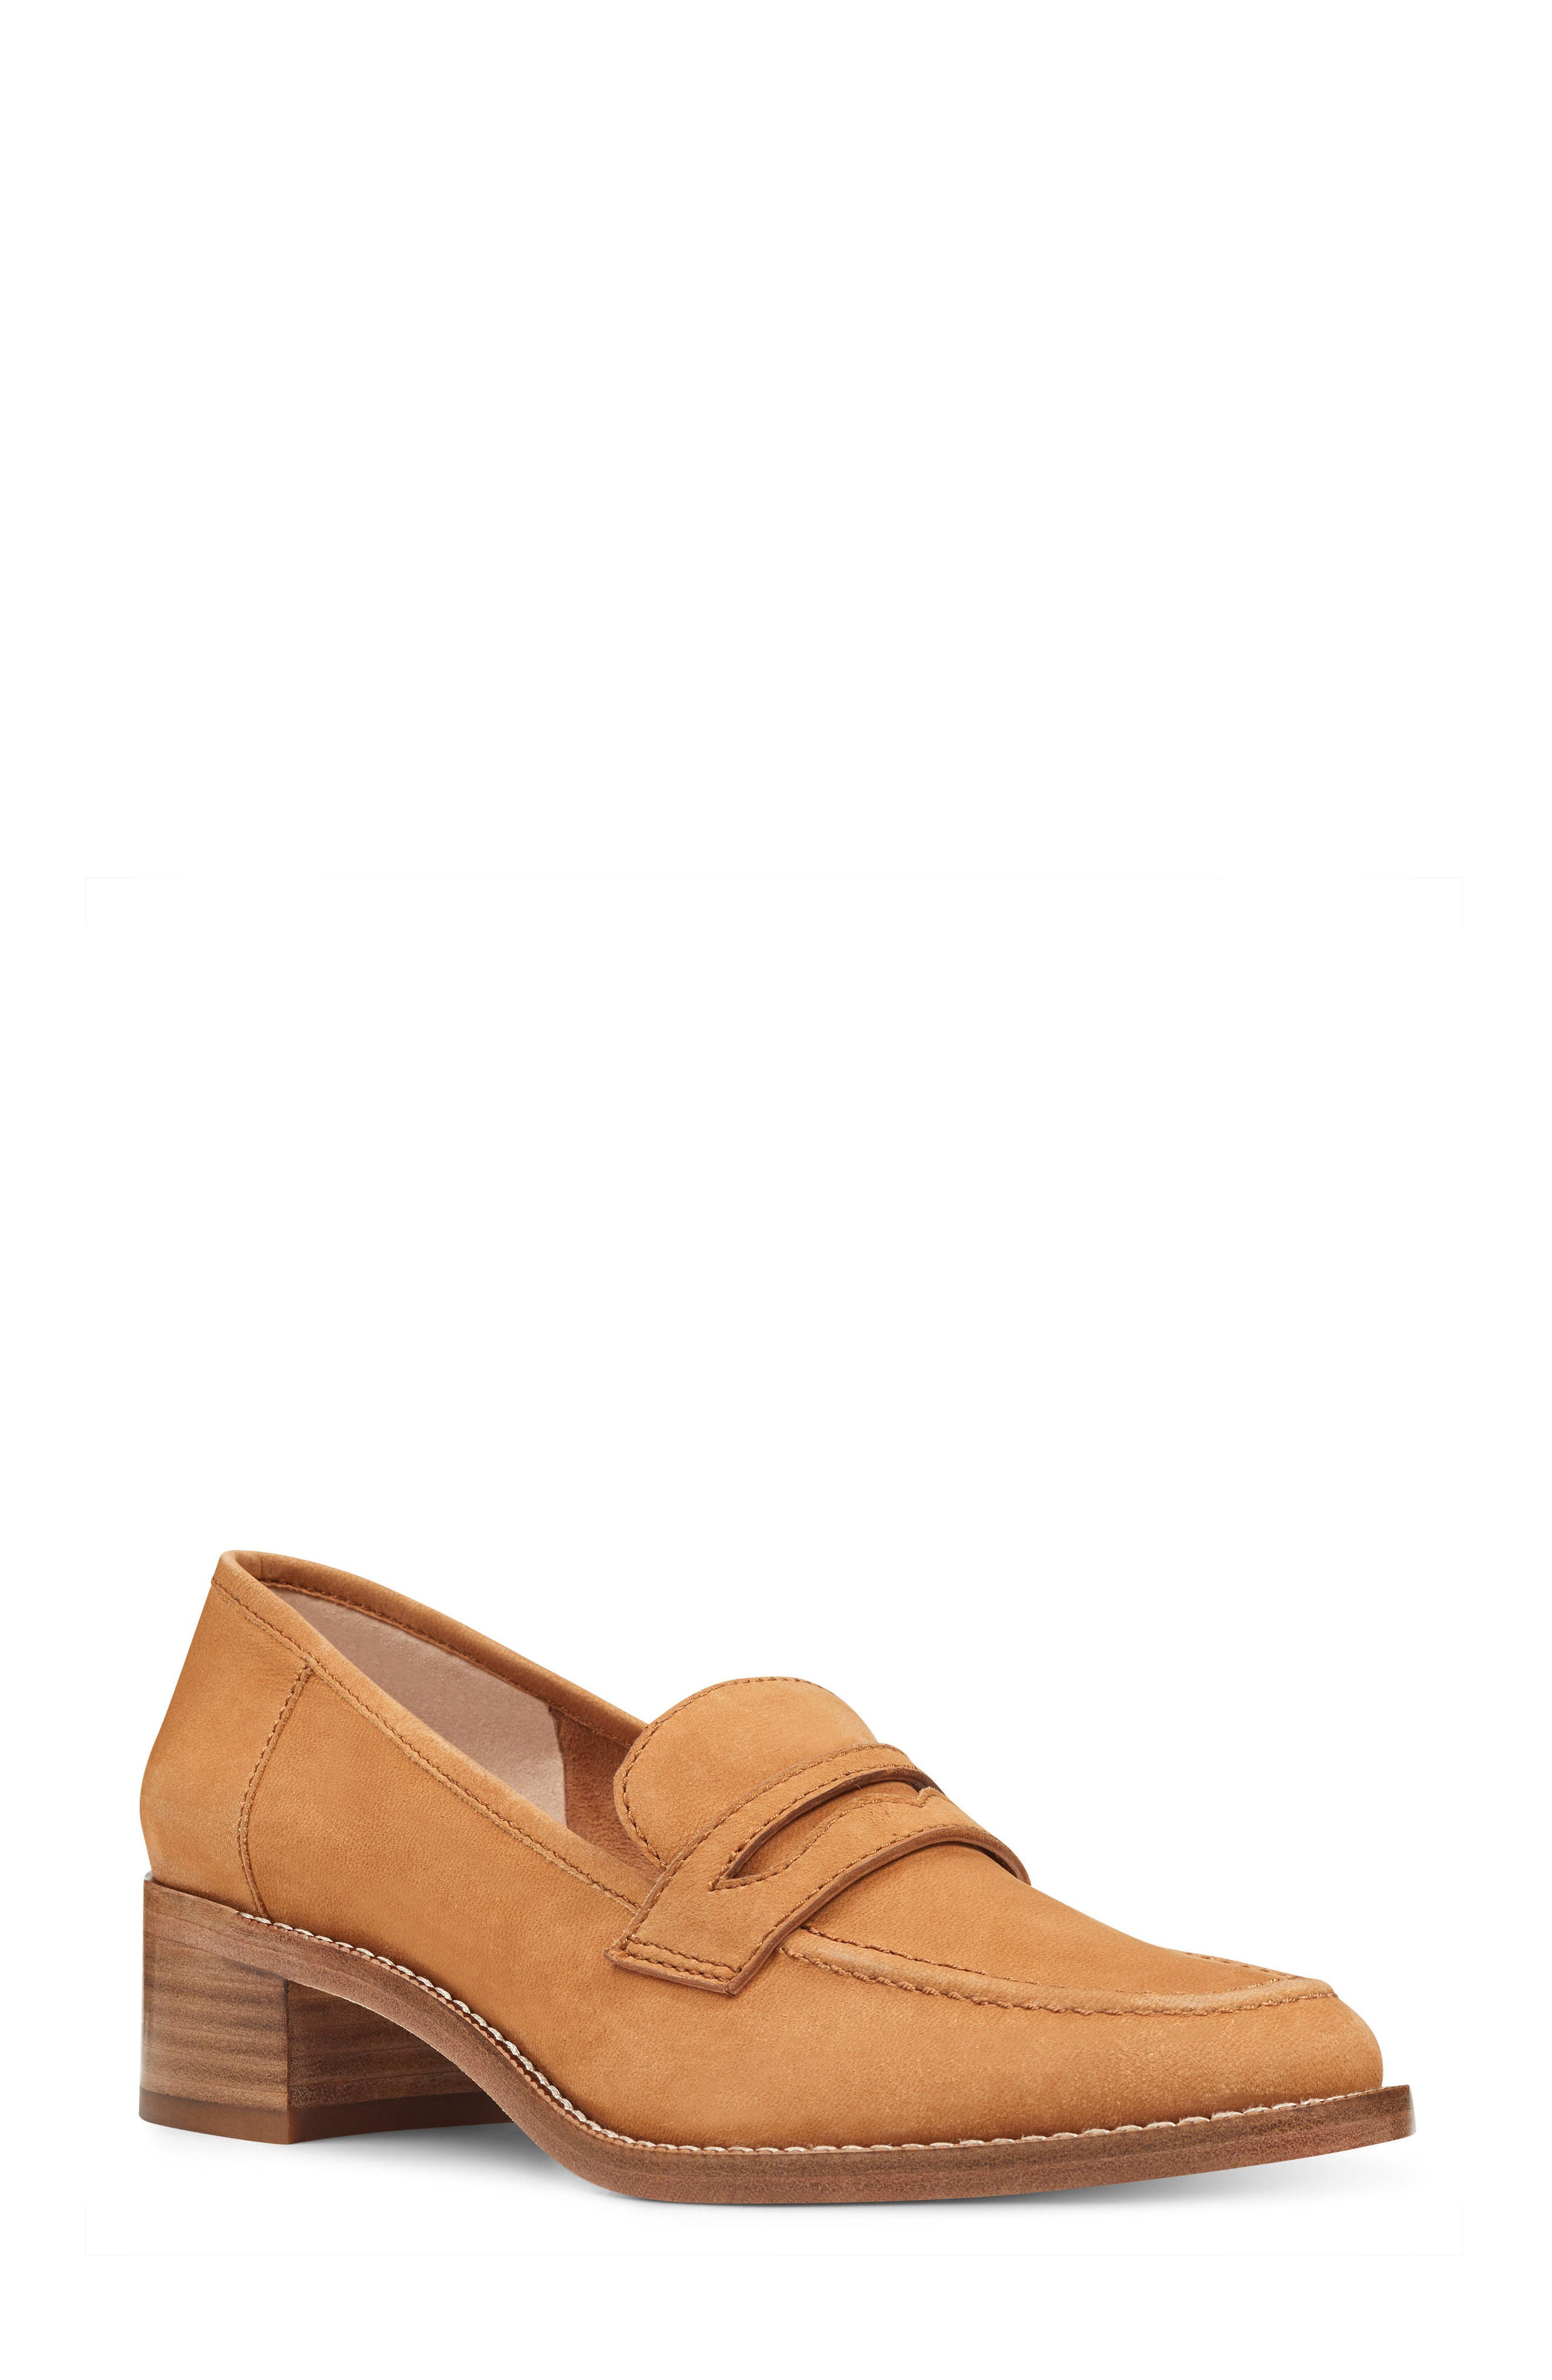 Nine West Kimmy - 40th Anniversary Capsule Collection Penny Loafer (Women)